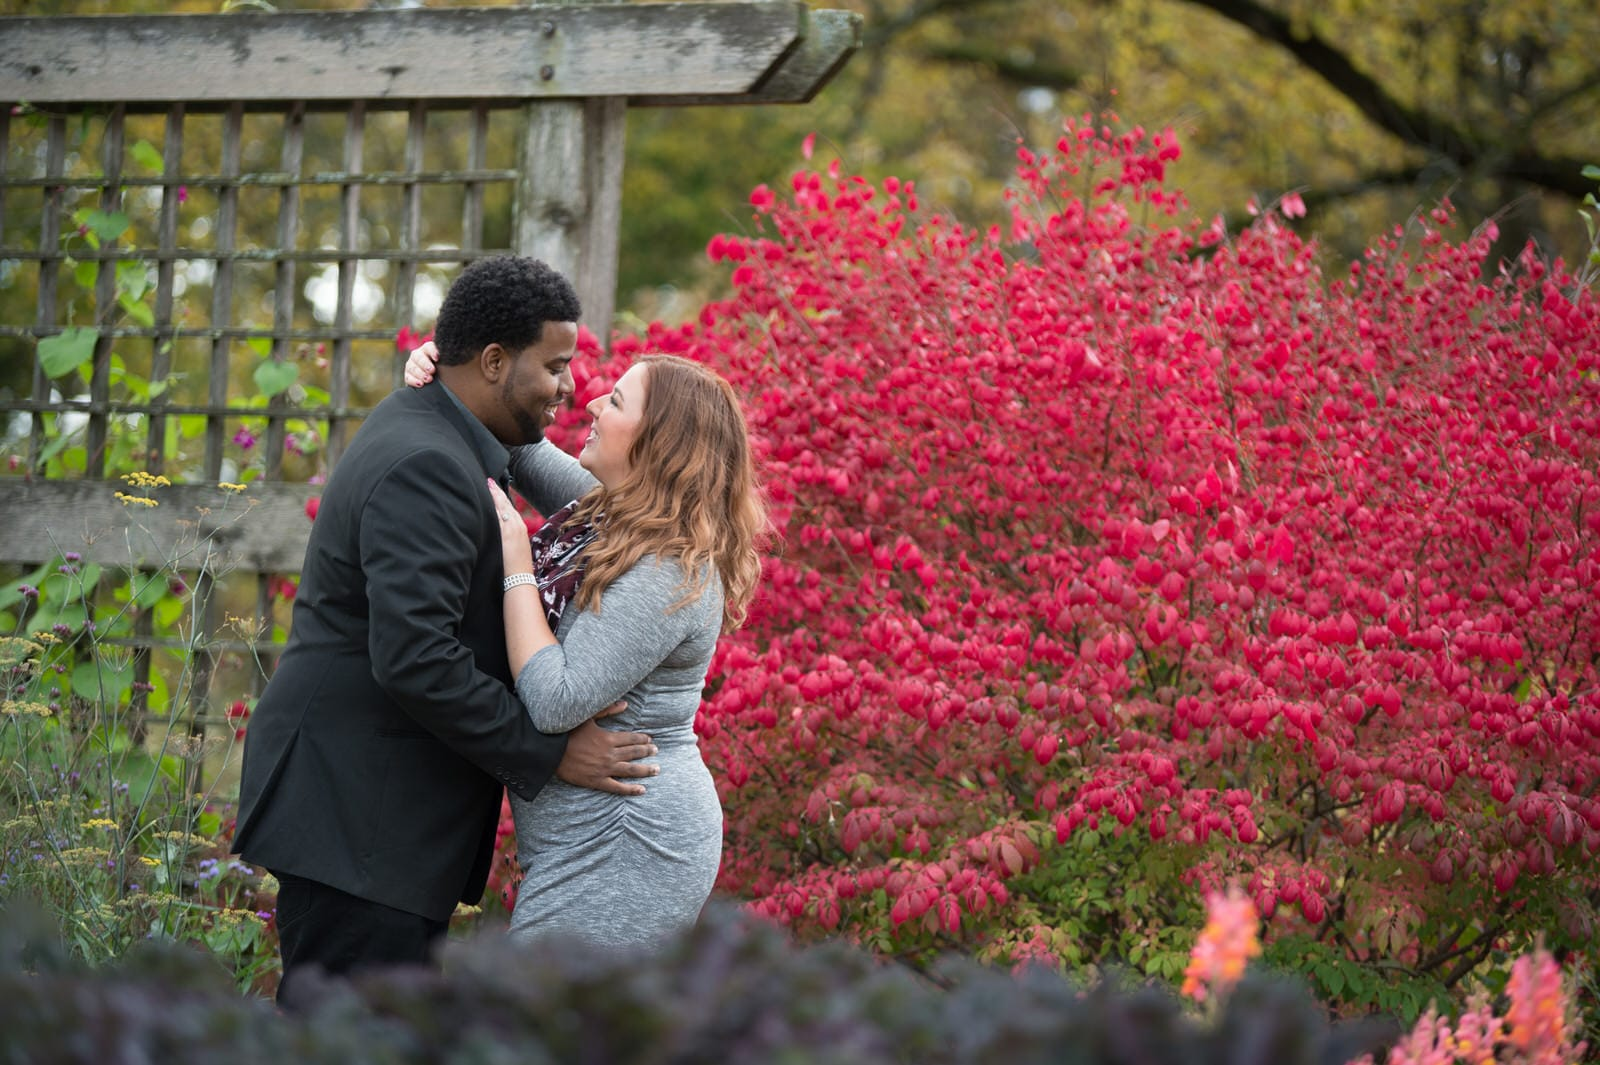 The couple is facing each other in front of a red bush.